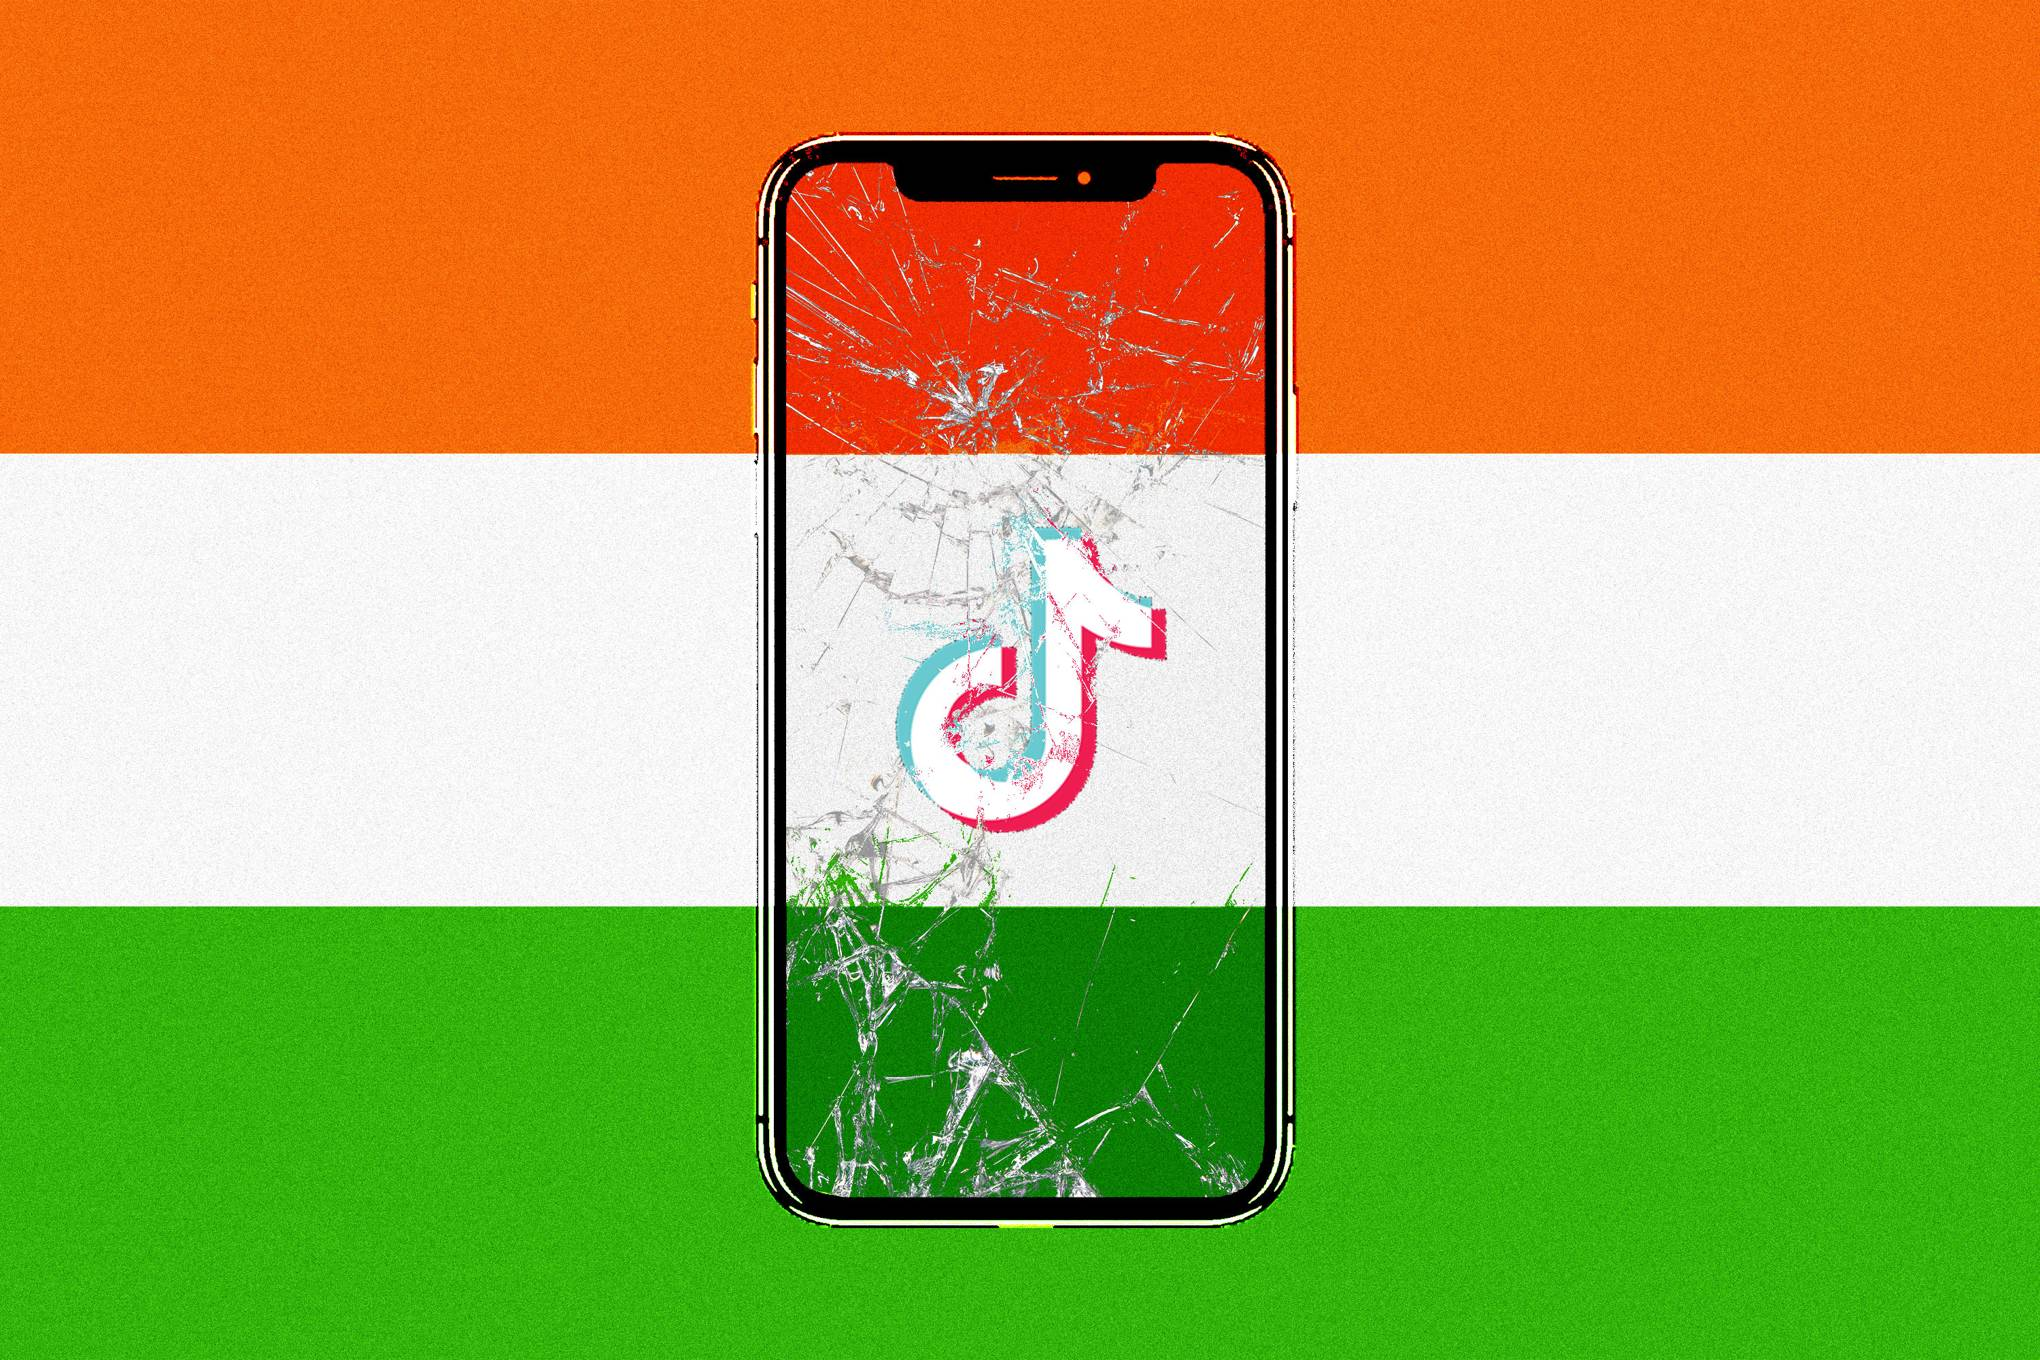 TikTok is fuelling India's deadly hate speech epidemic | WIRED UK